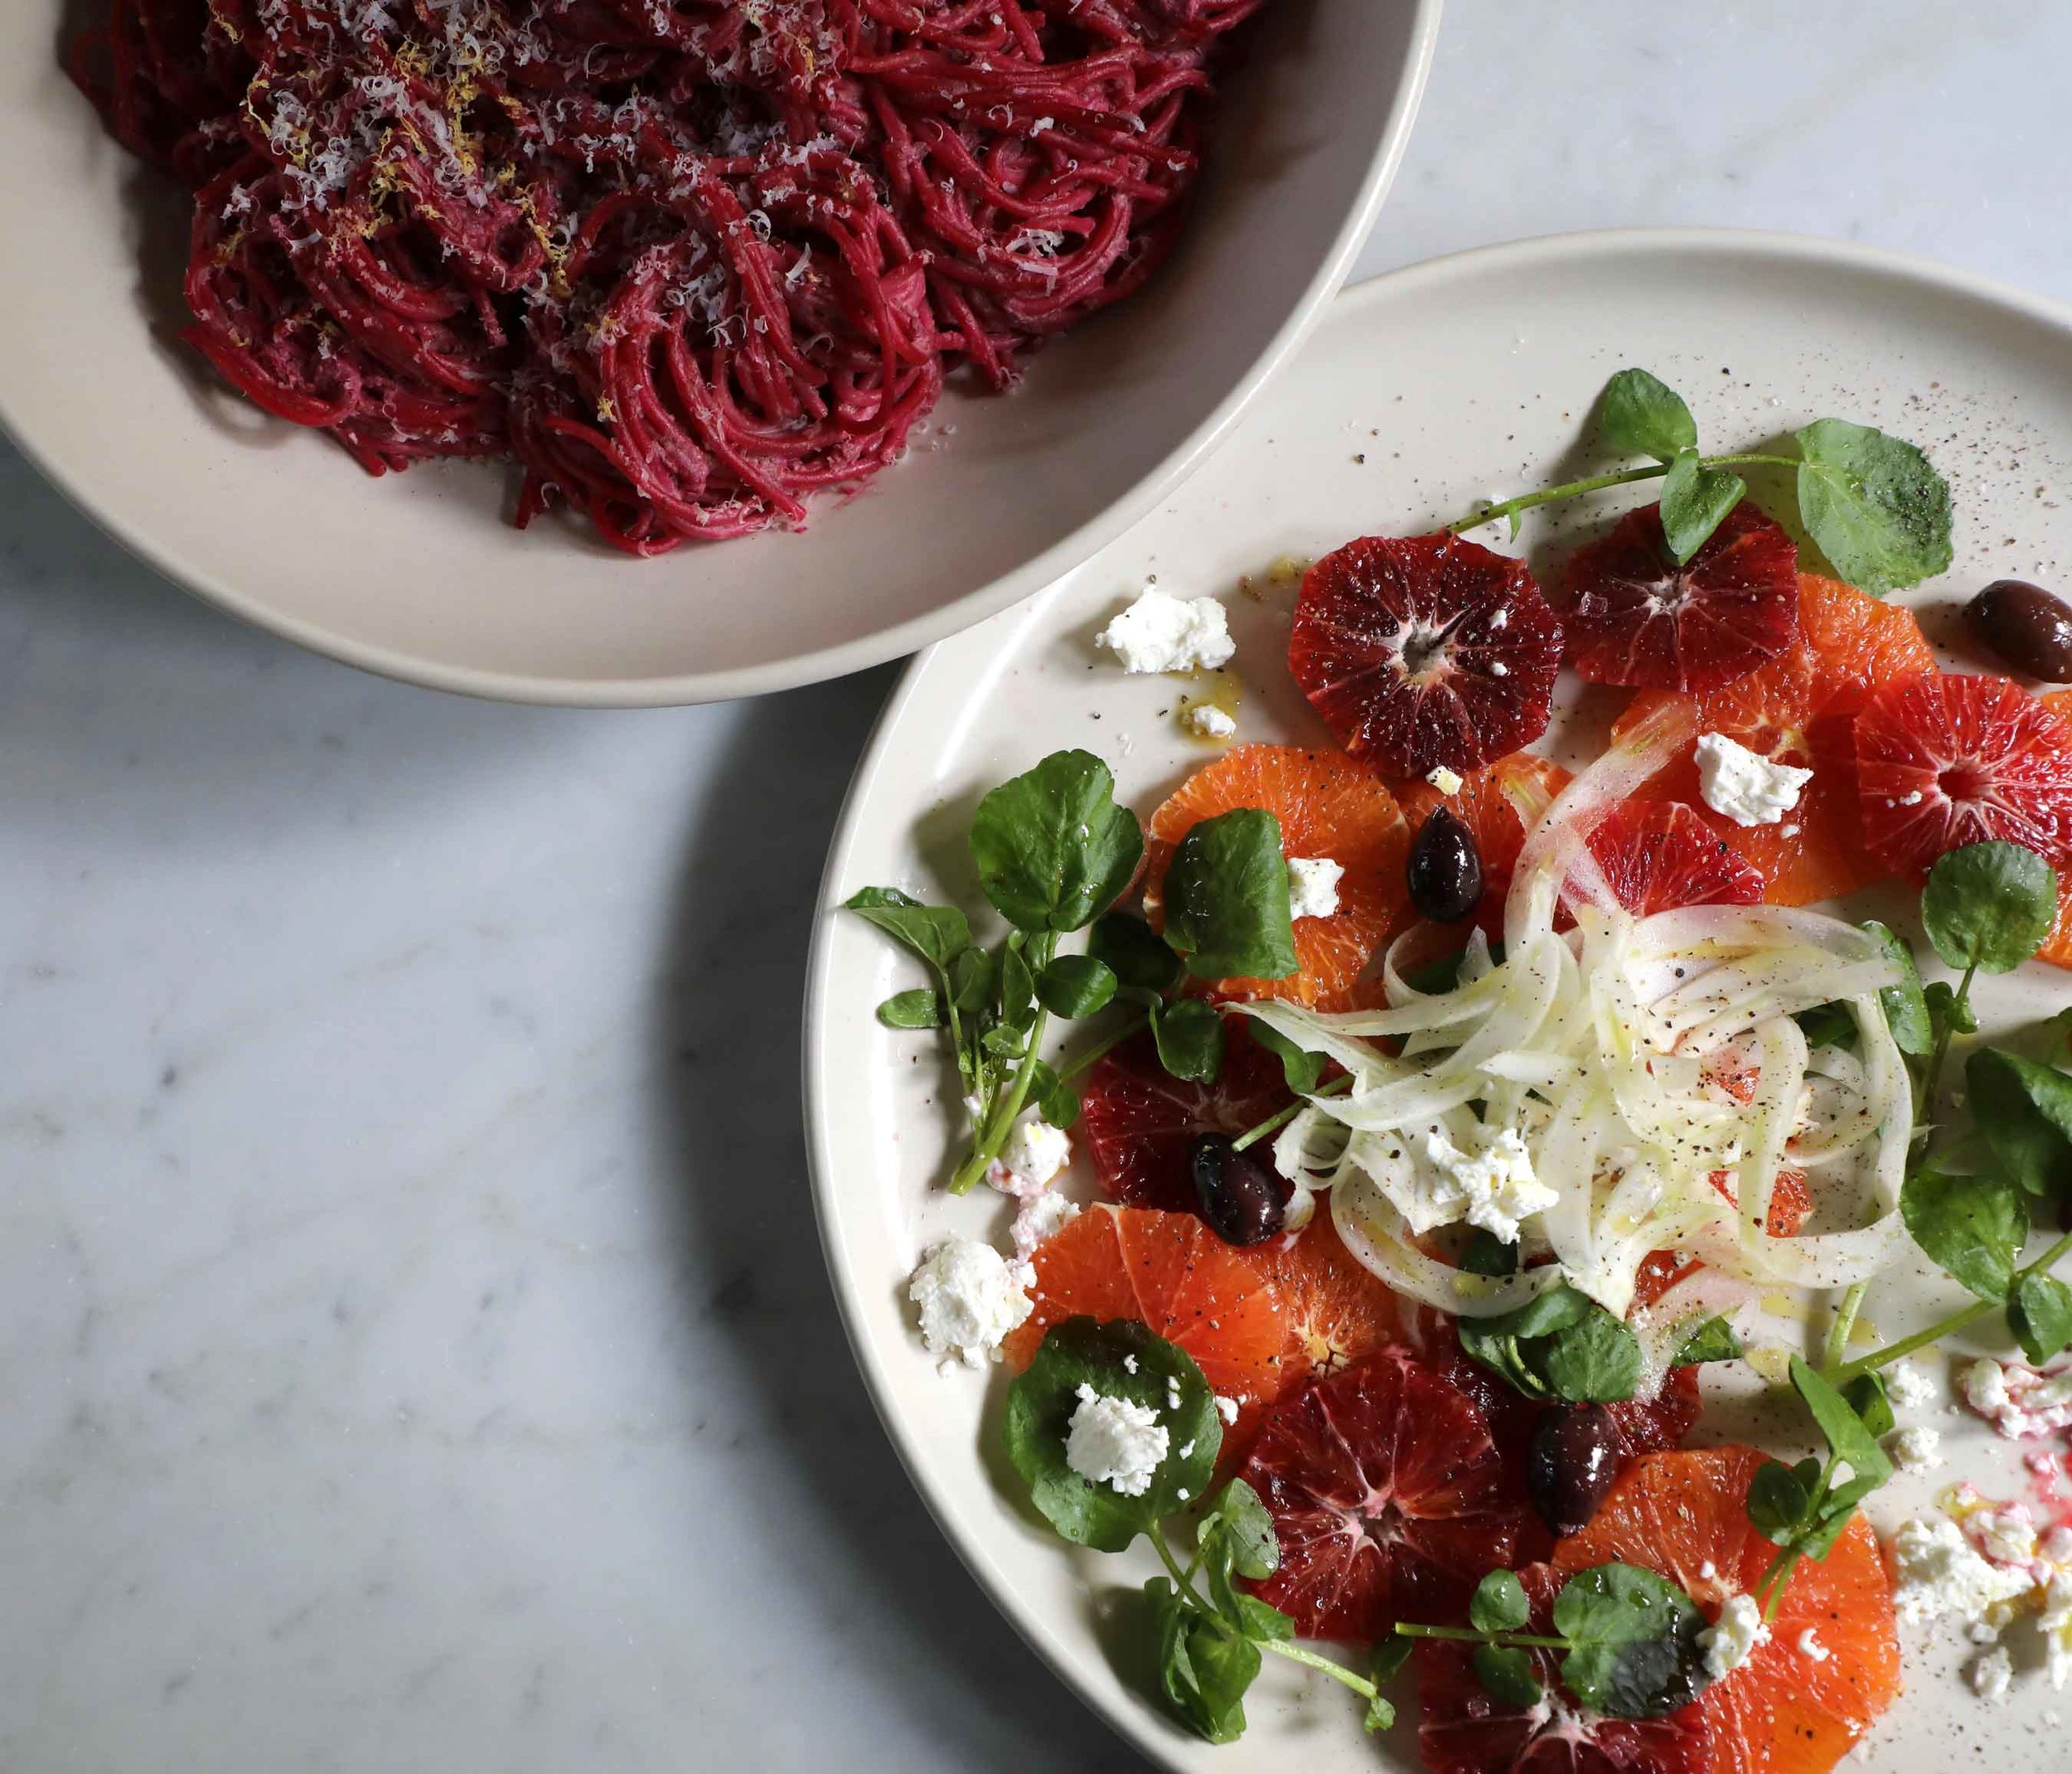 I made this salad of Cara Cara, blood orange, fennel, goat cheese, olives and watercress last night and it brightened my day as well as my family's meal!  It was so simple to make, but looked like a restaurant dish.  Try it!